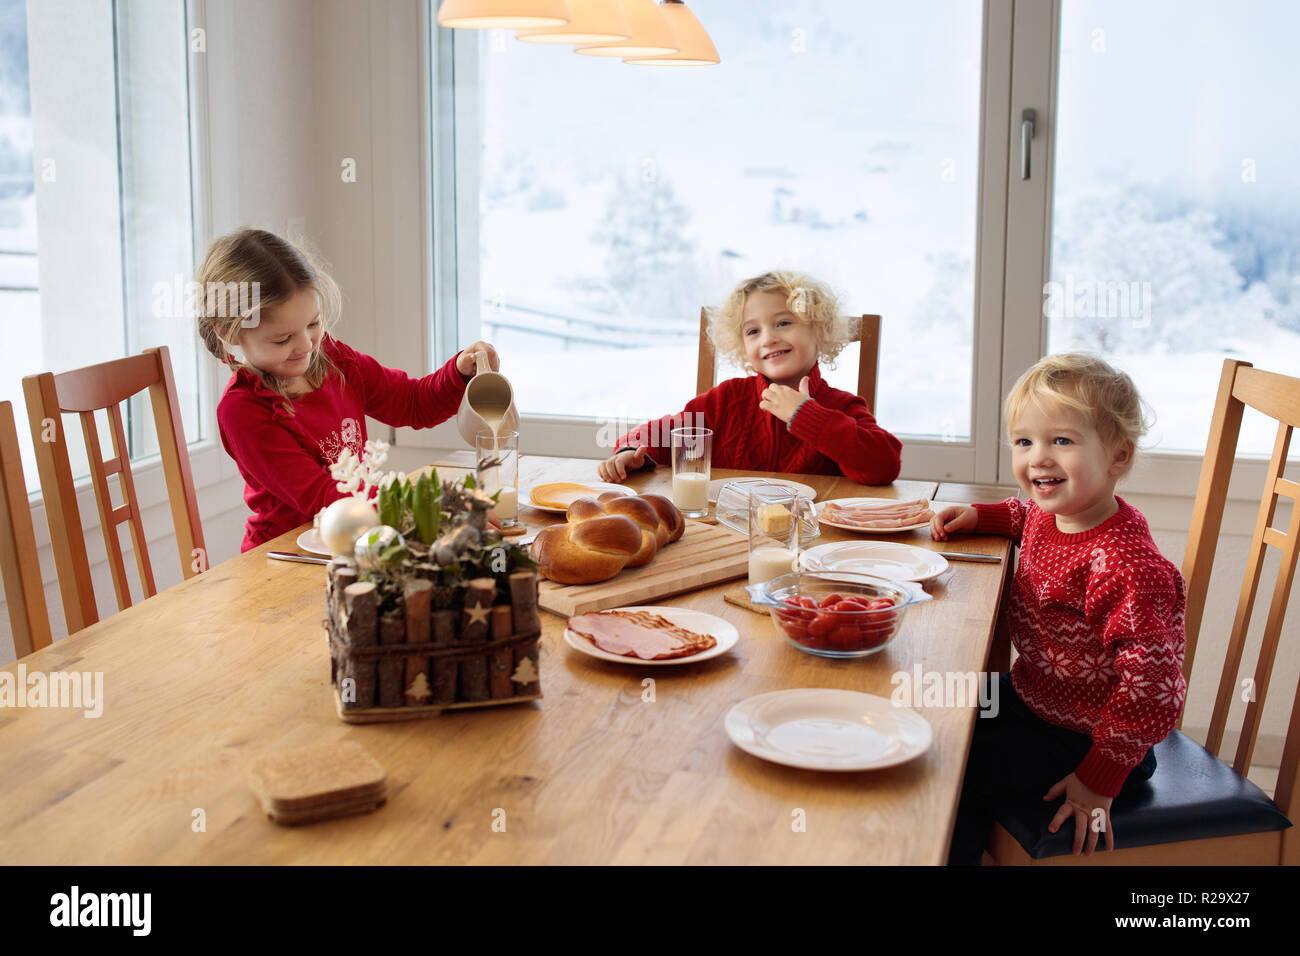 family having lunch dining room stock photos family having lunch dining room stock images alamy. Black Bedroom Furniture Sets. Home Design Ideas